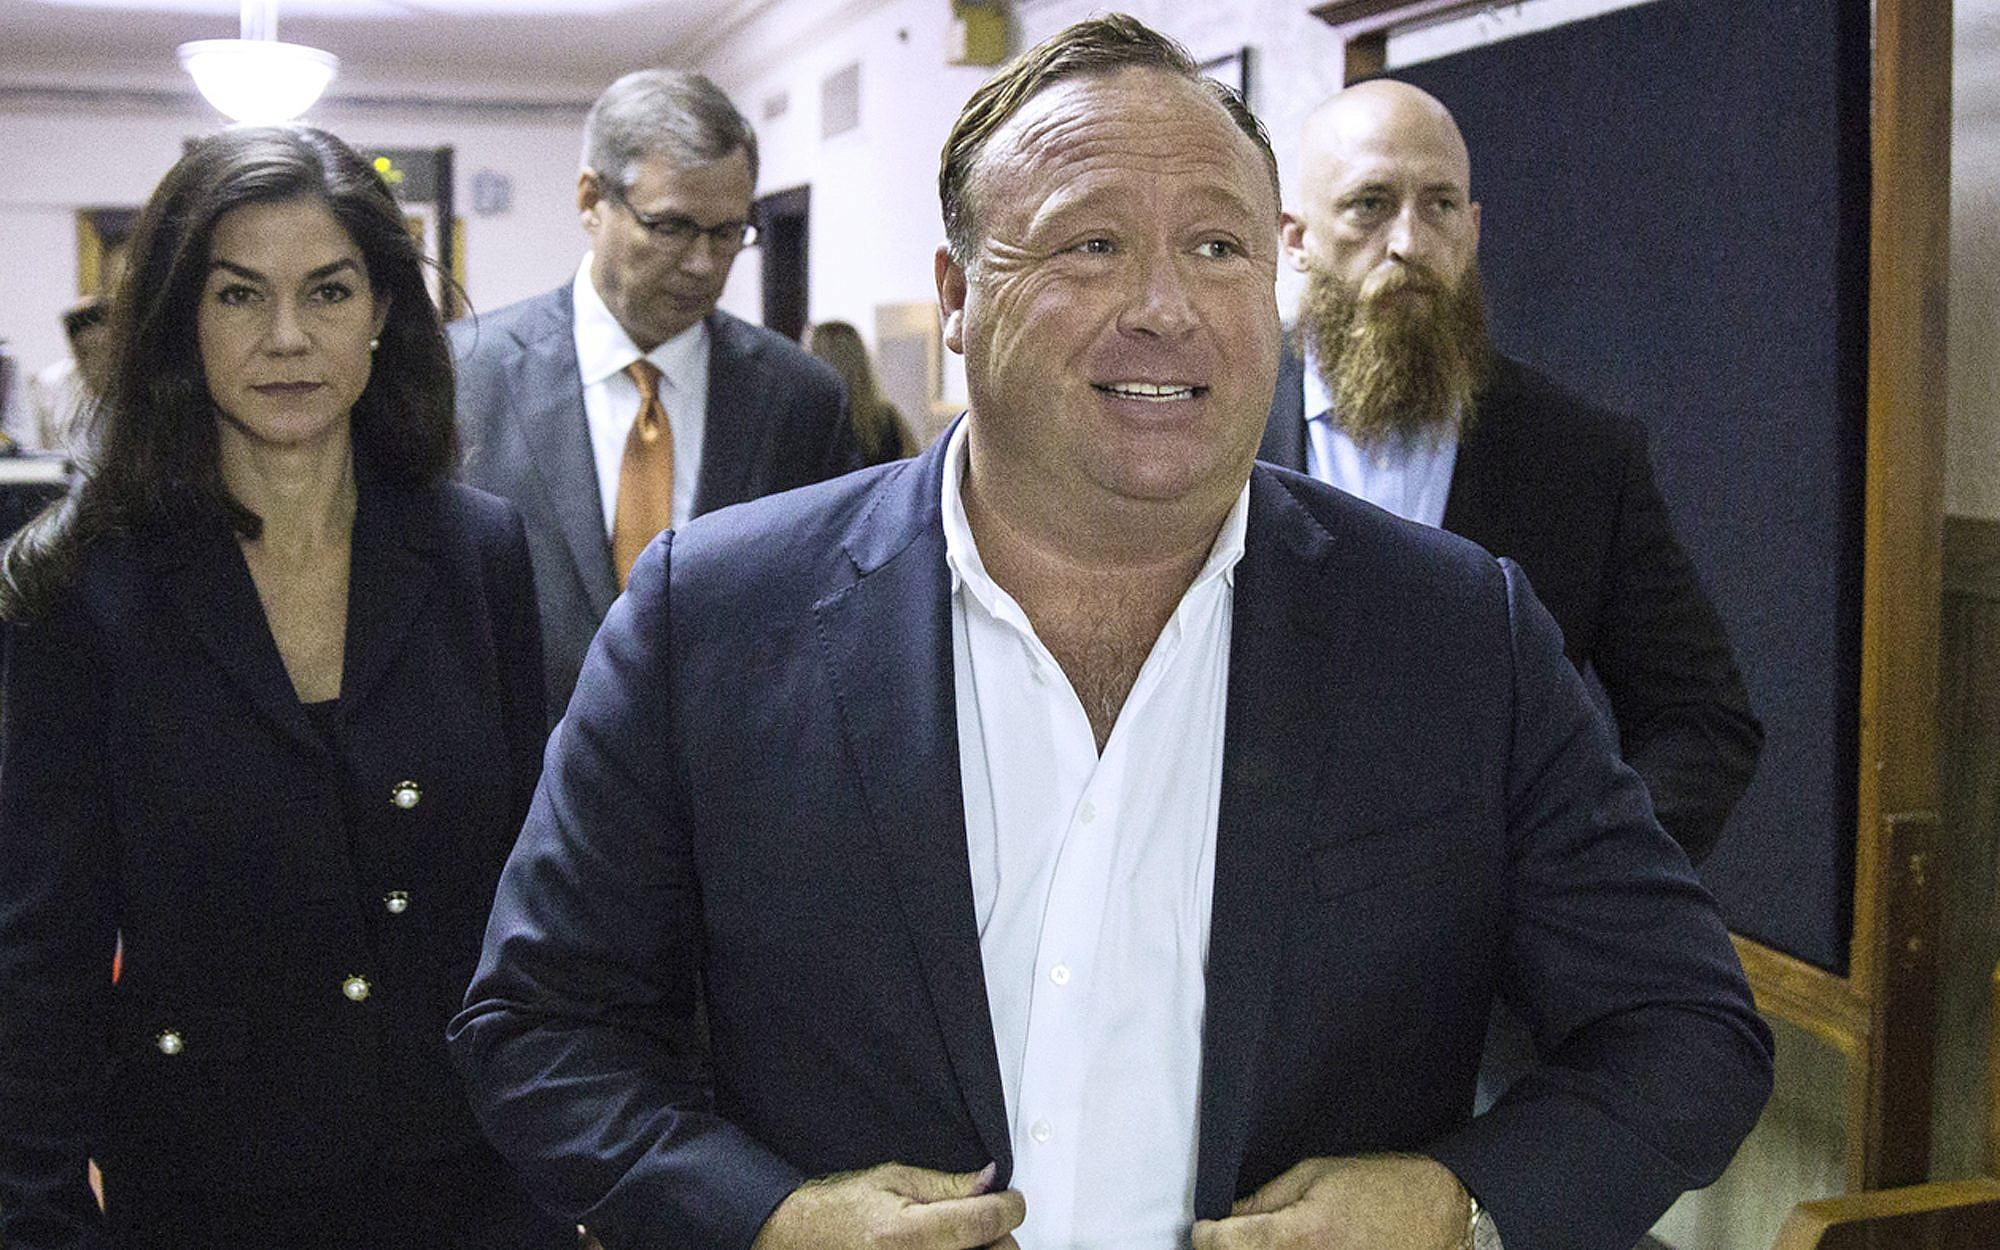 2017 'Infowars&#039 host Alex Jones arrives at the Travis County Courthouse in Austin Texas